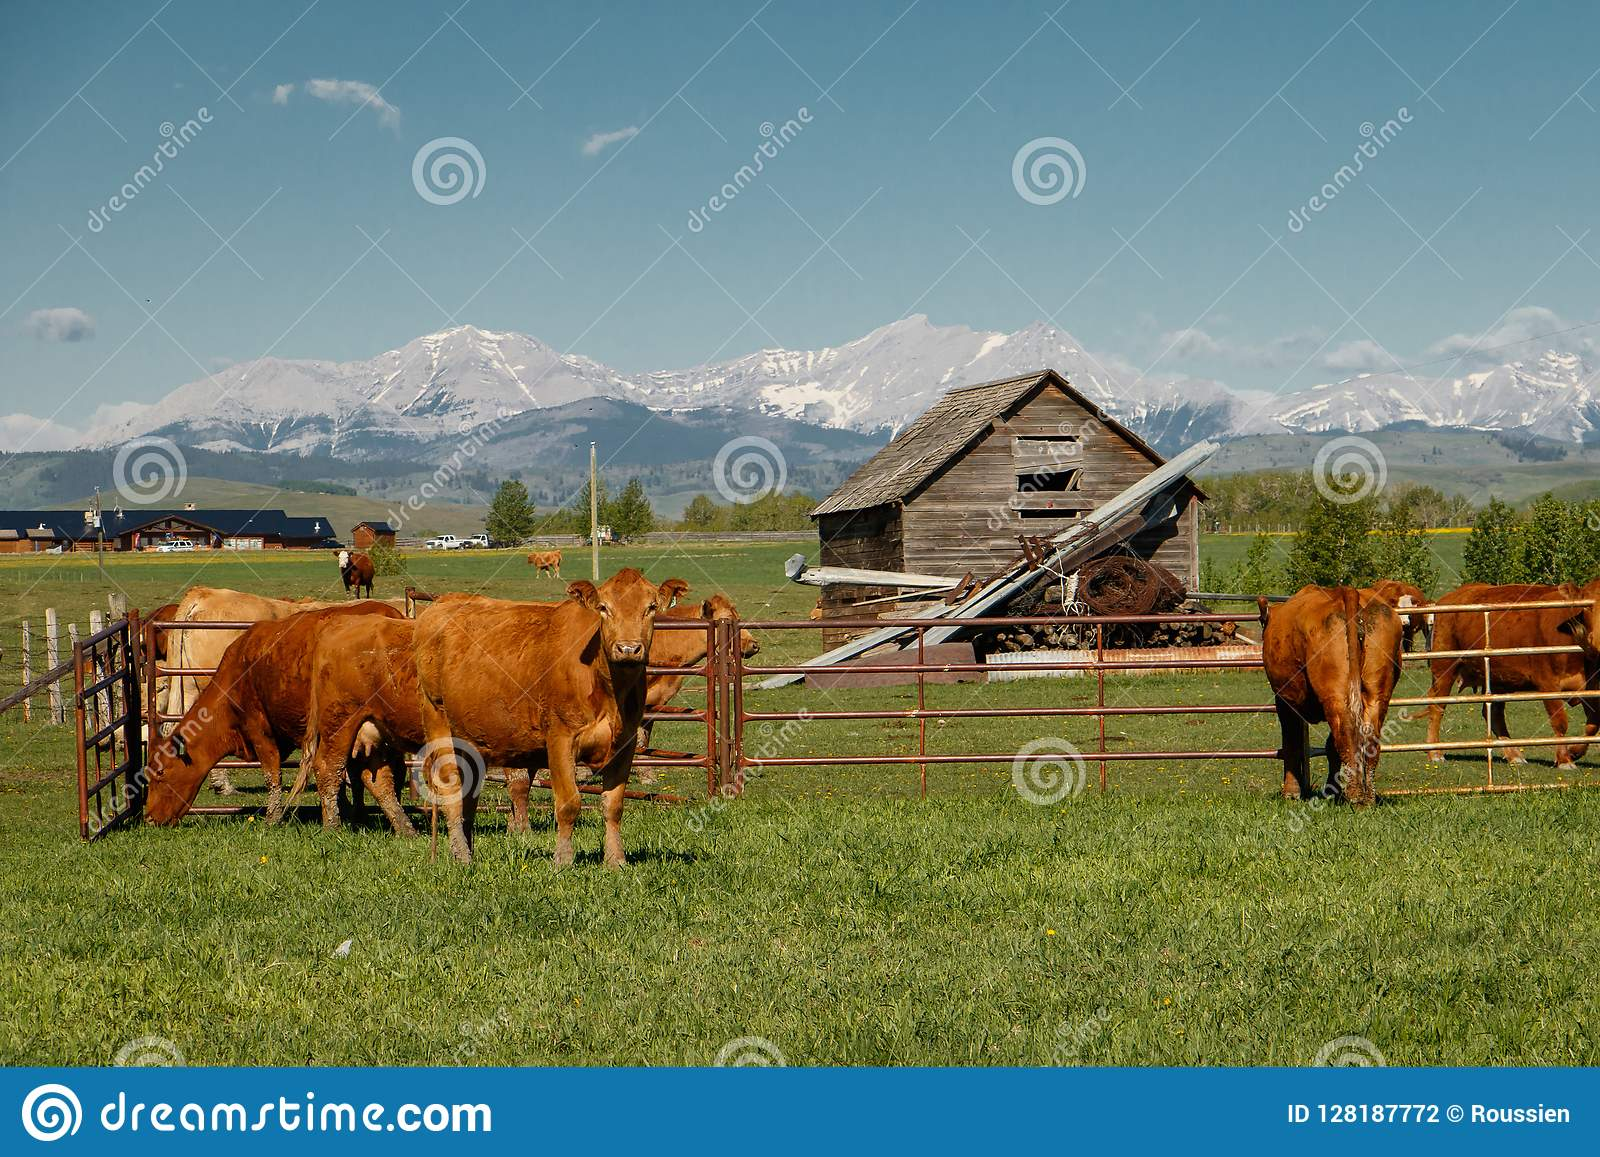 Cows As Traditional Farming Livestock In Southern Alberta Canada Stock Photo Image Of Alberta Cows 128187772